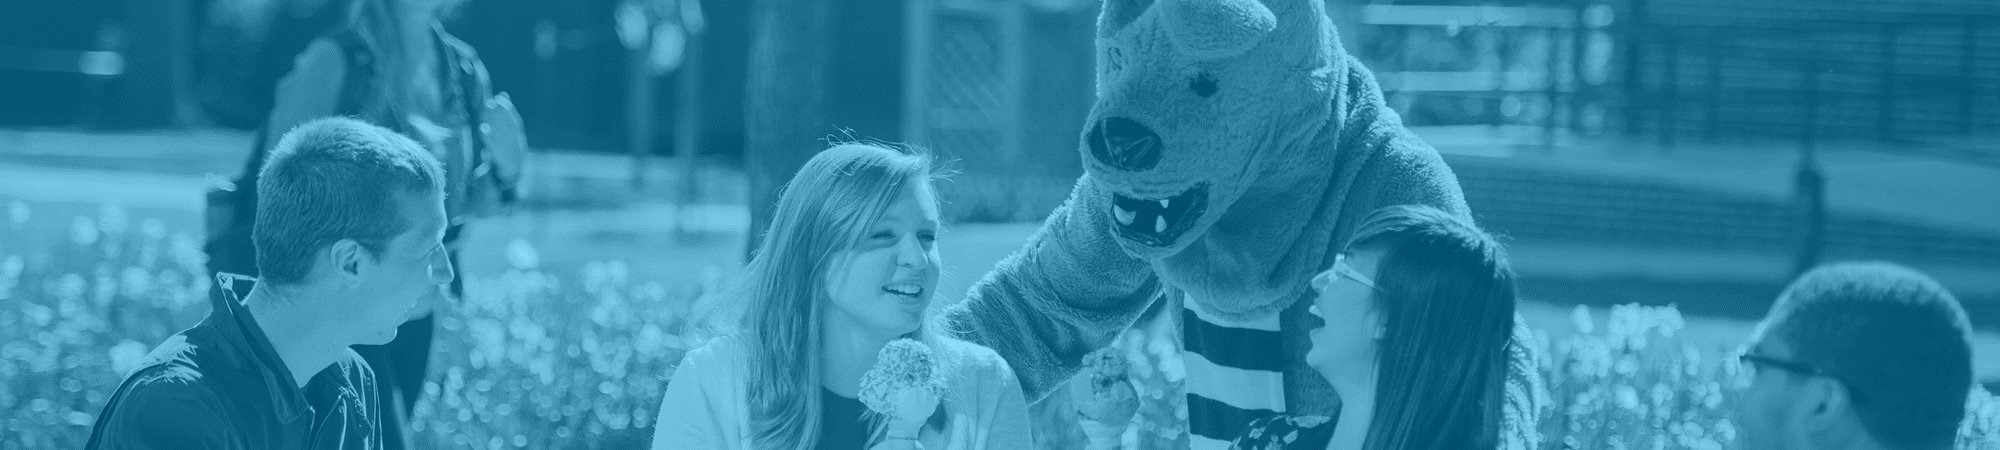 Nittany Lion and students with ice cream